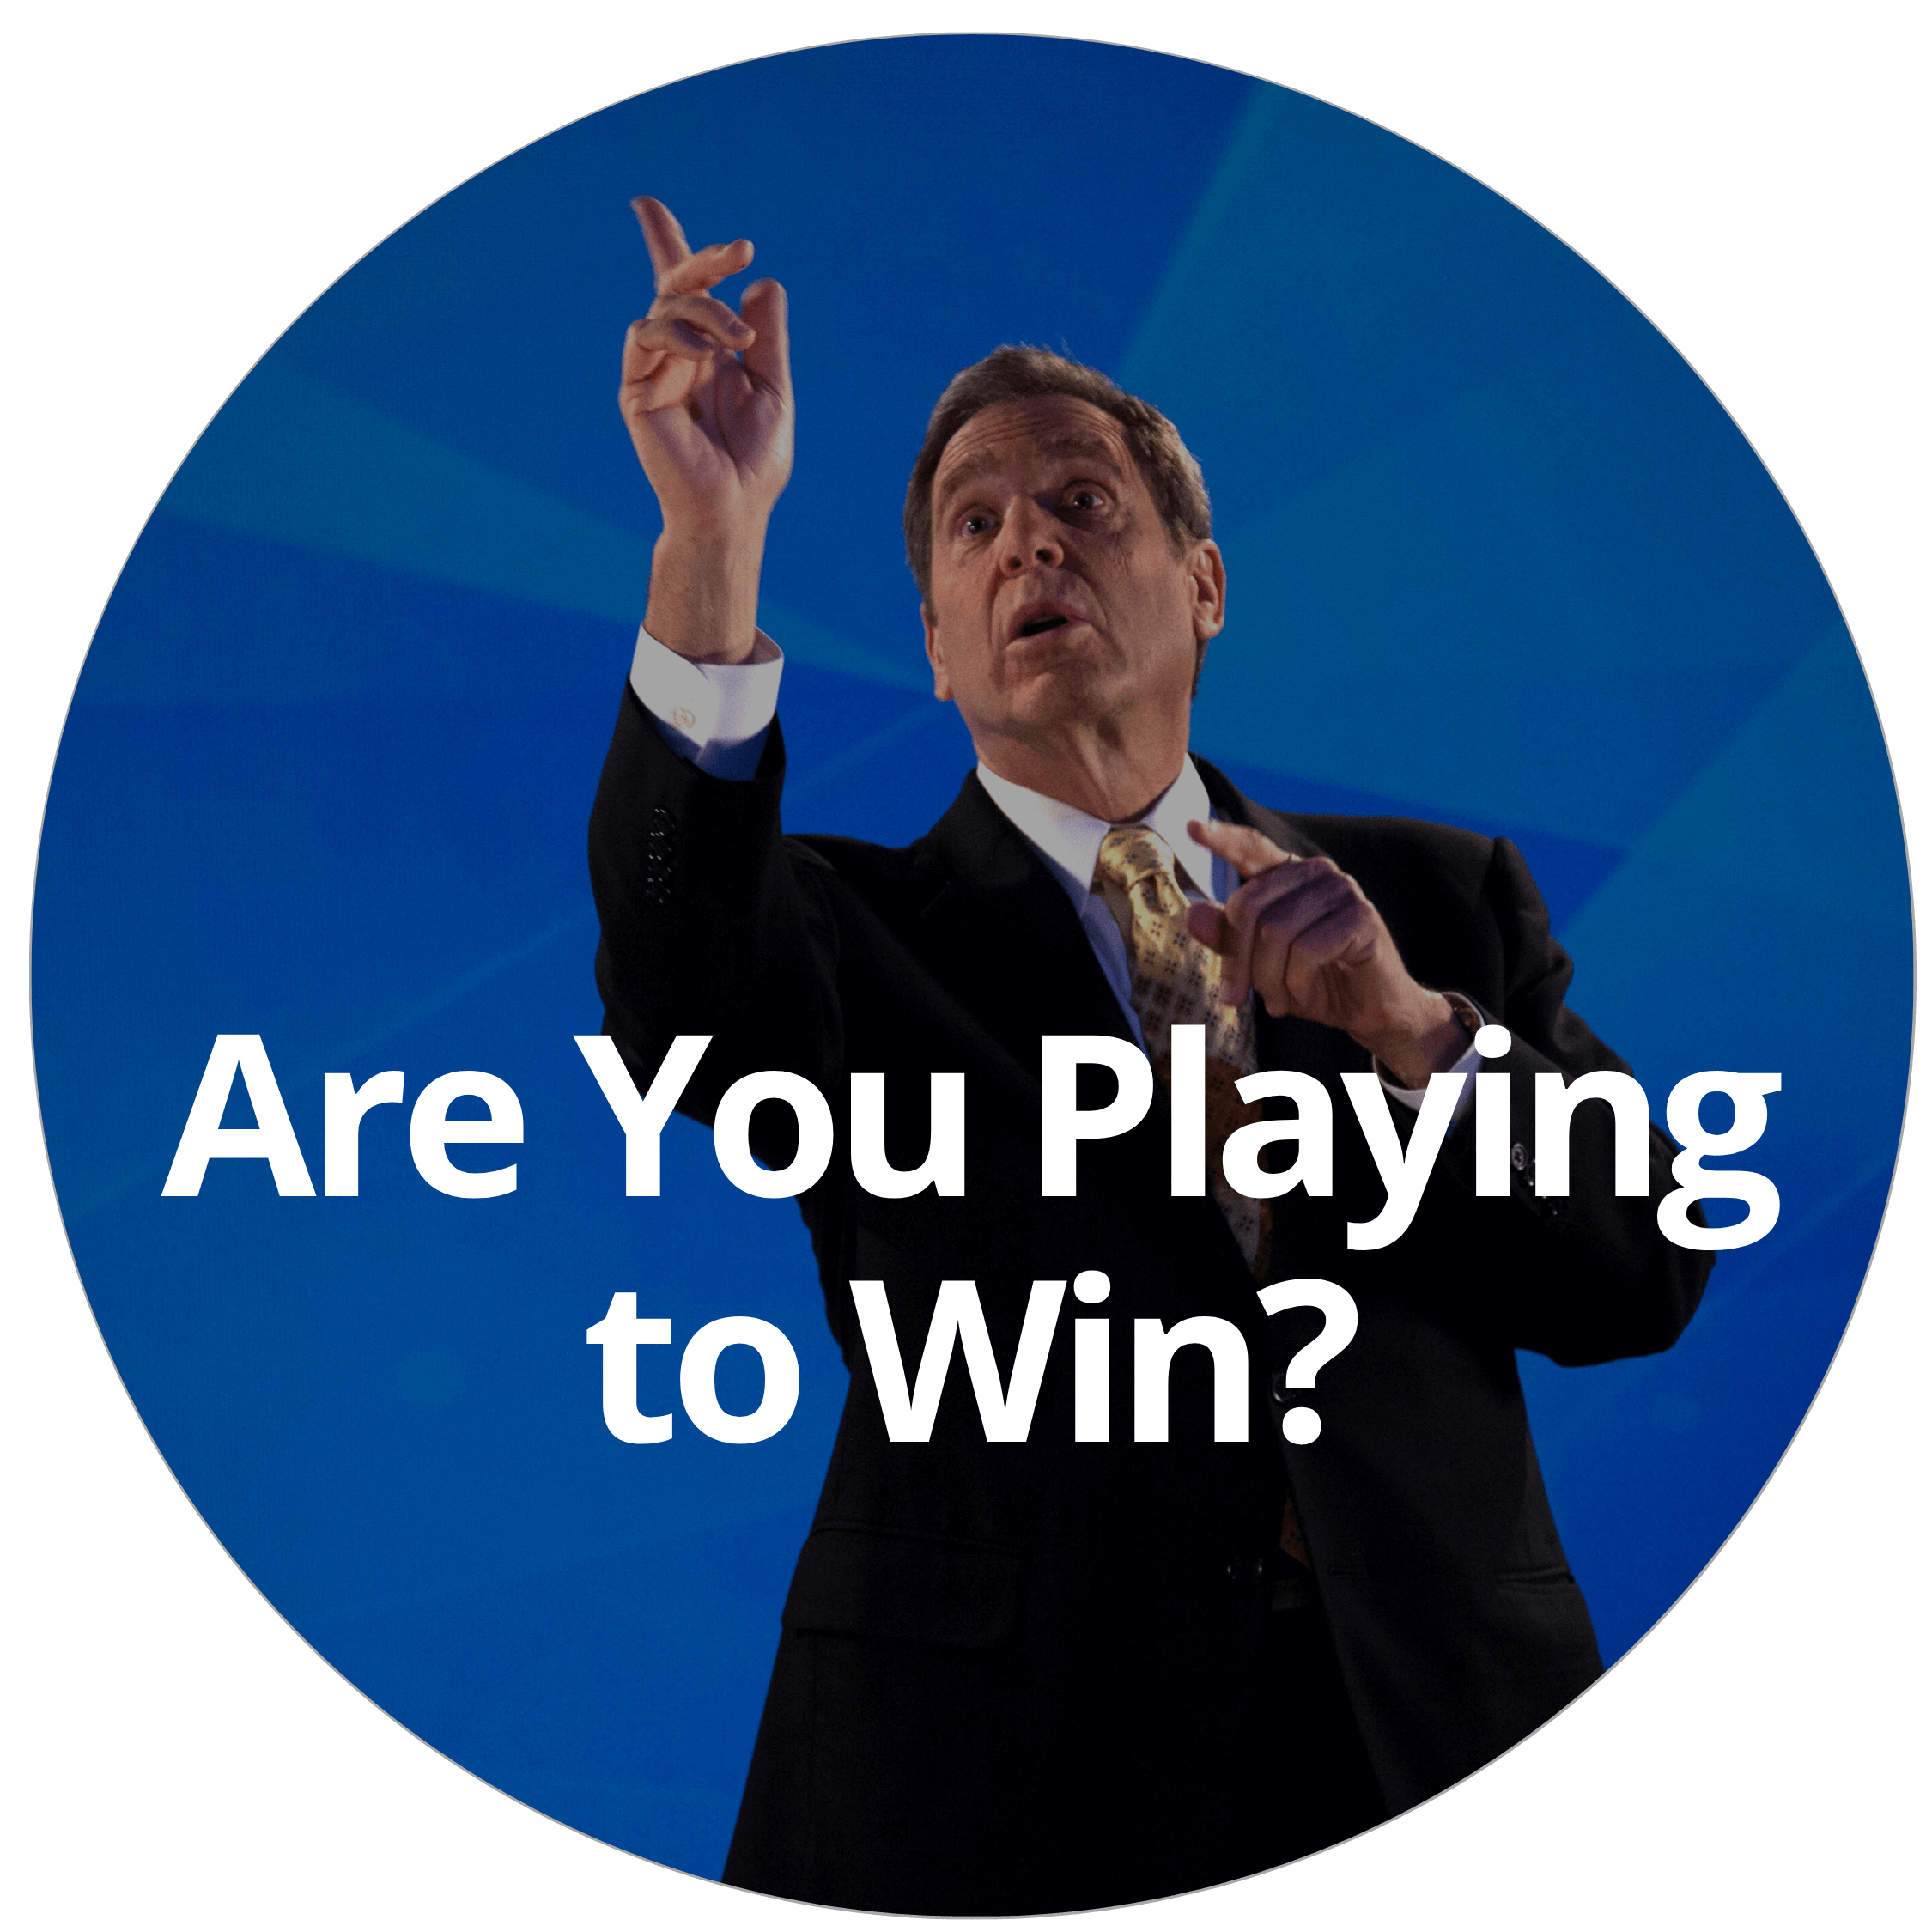 Are You Playing To Win